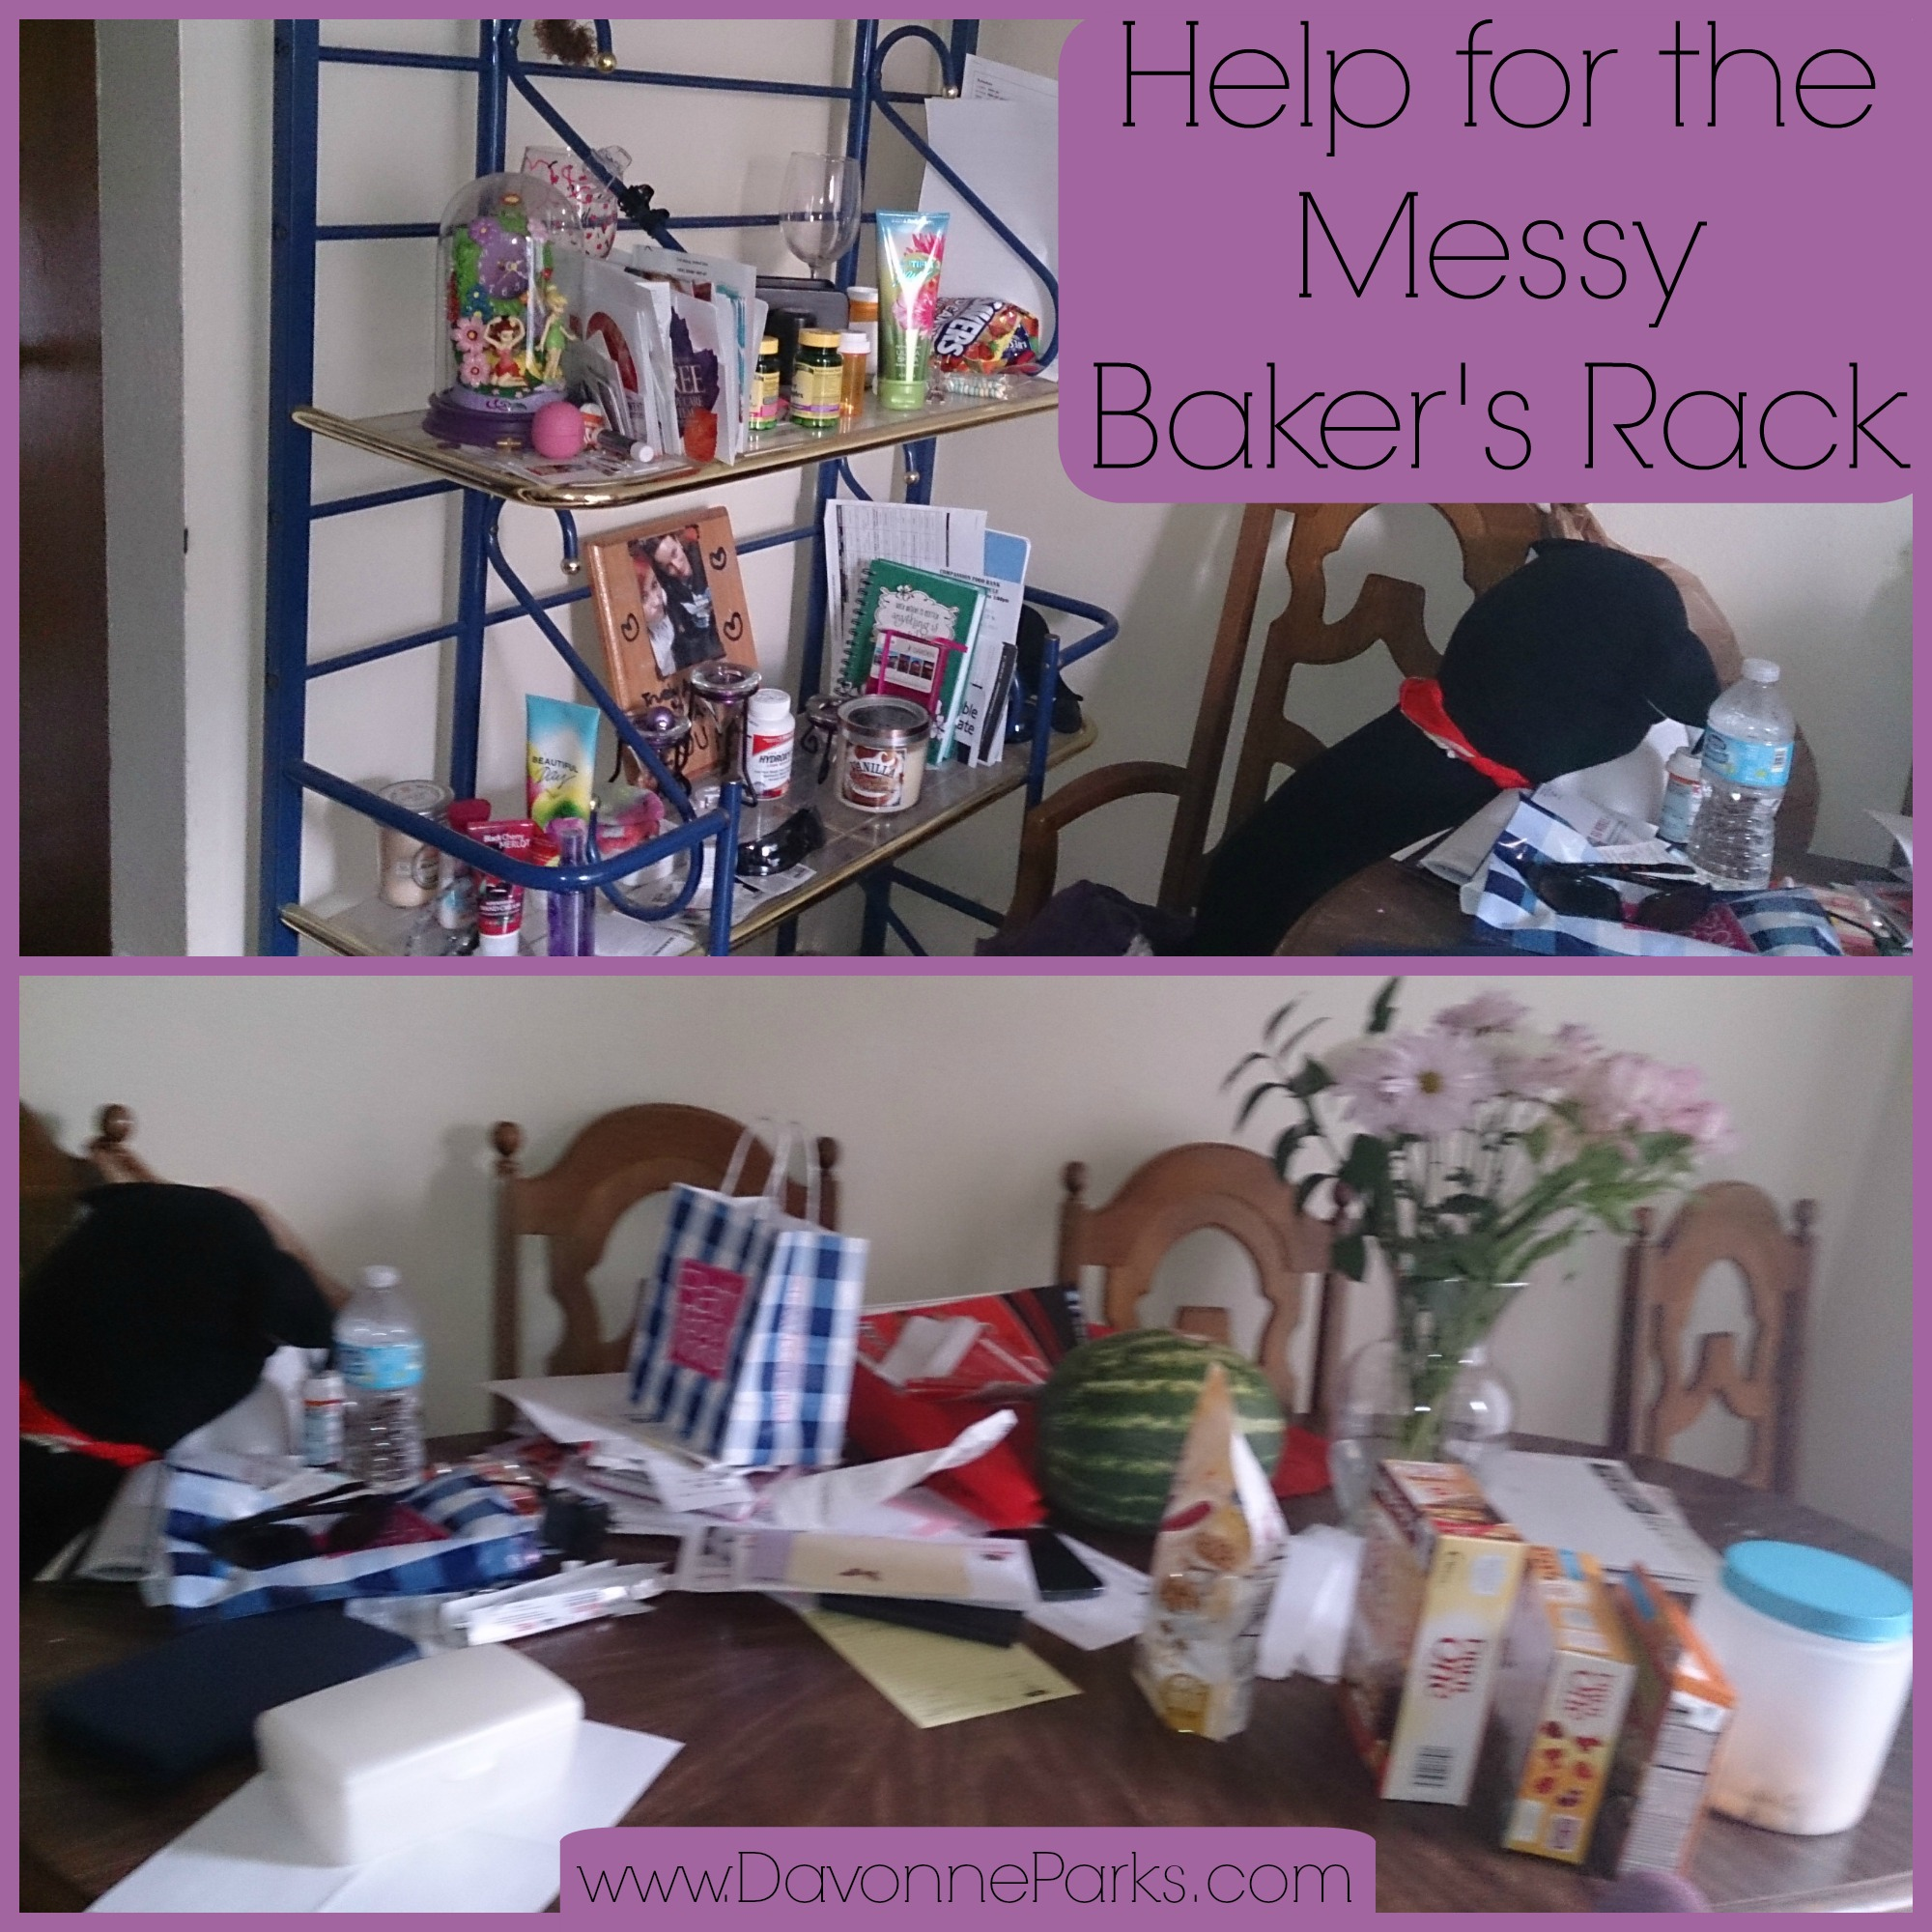 Messy Office Kitchen: Help For The Messy Baker's Rack